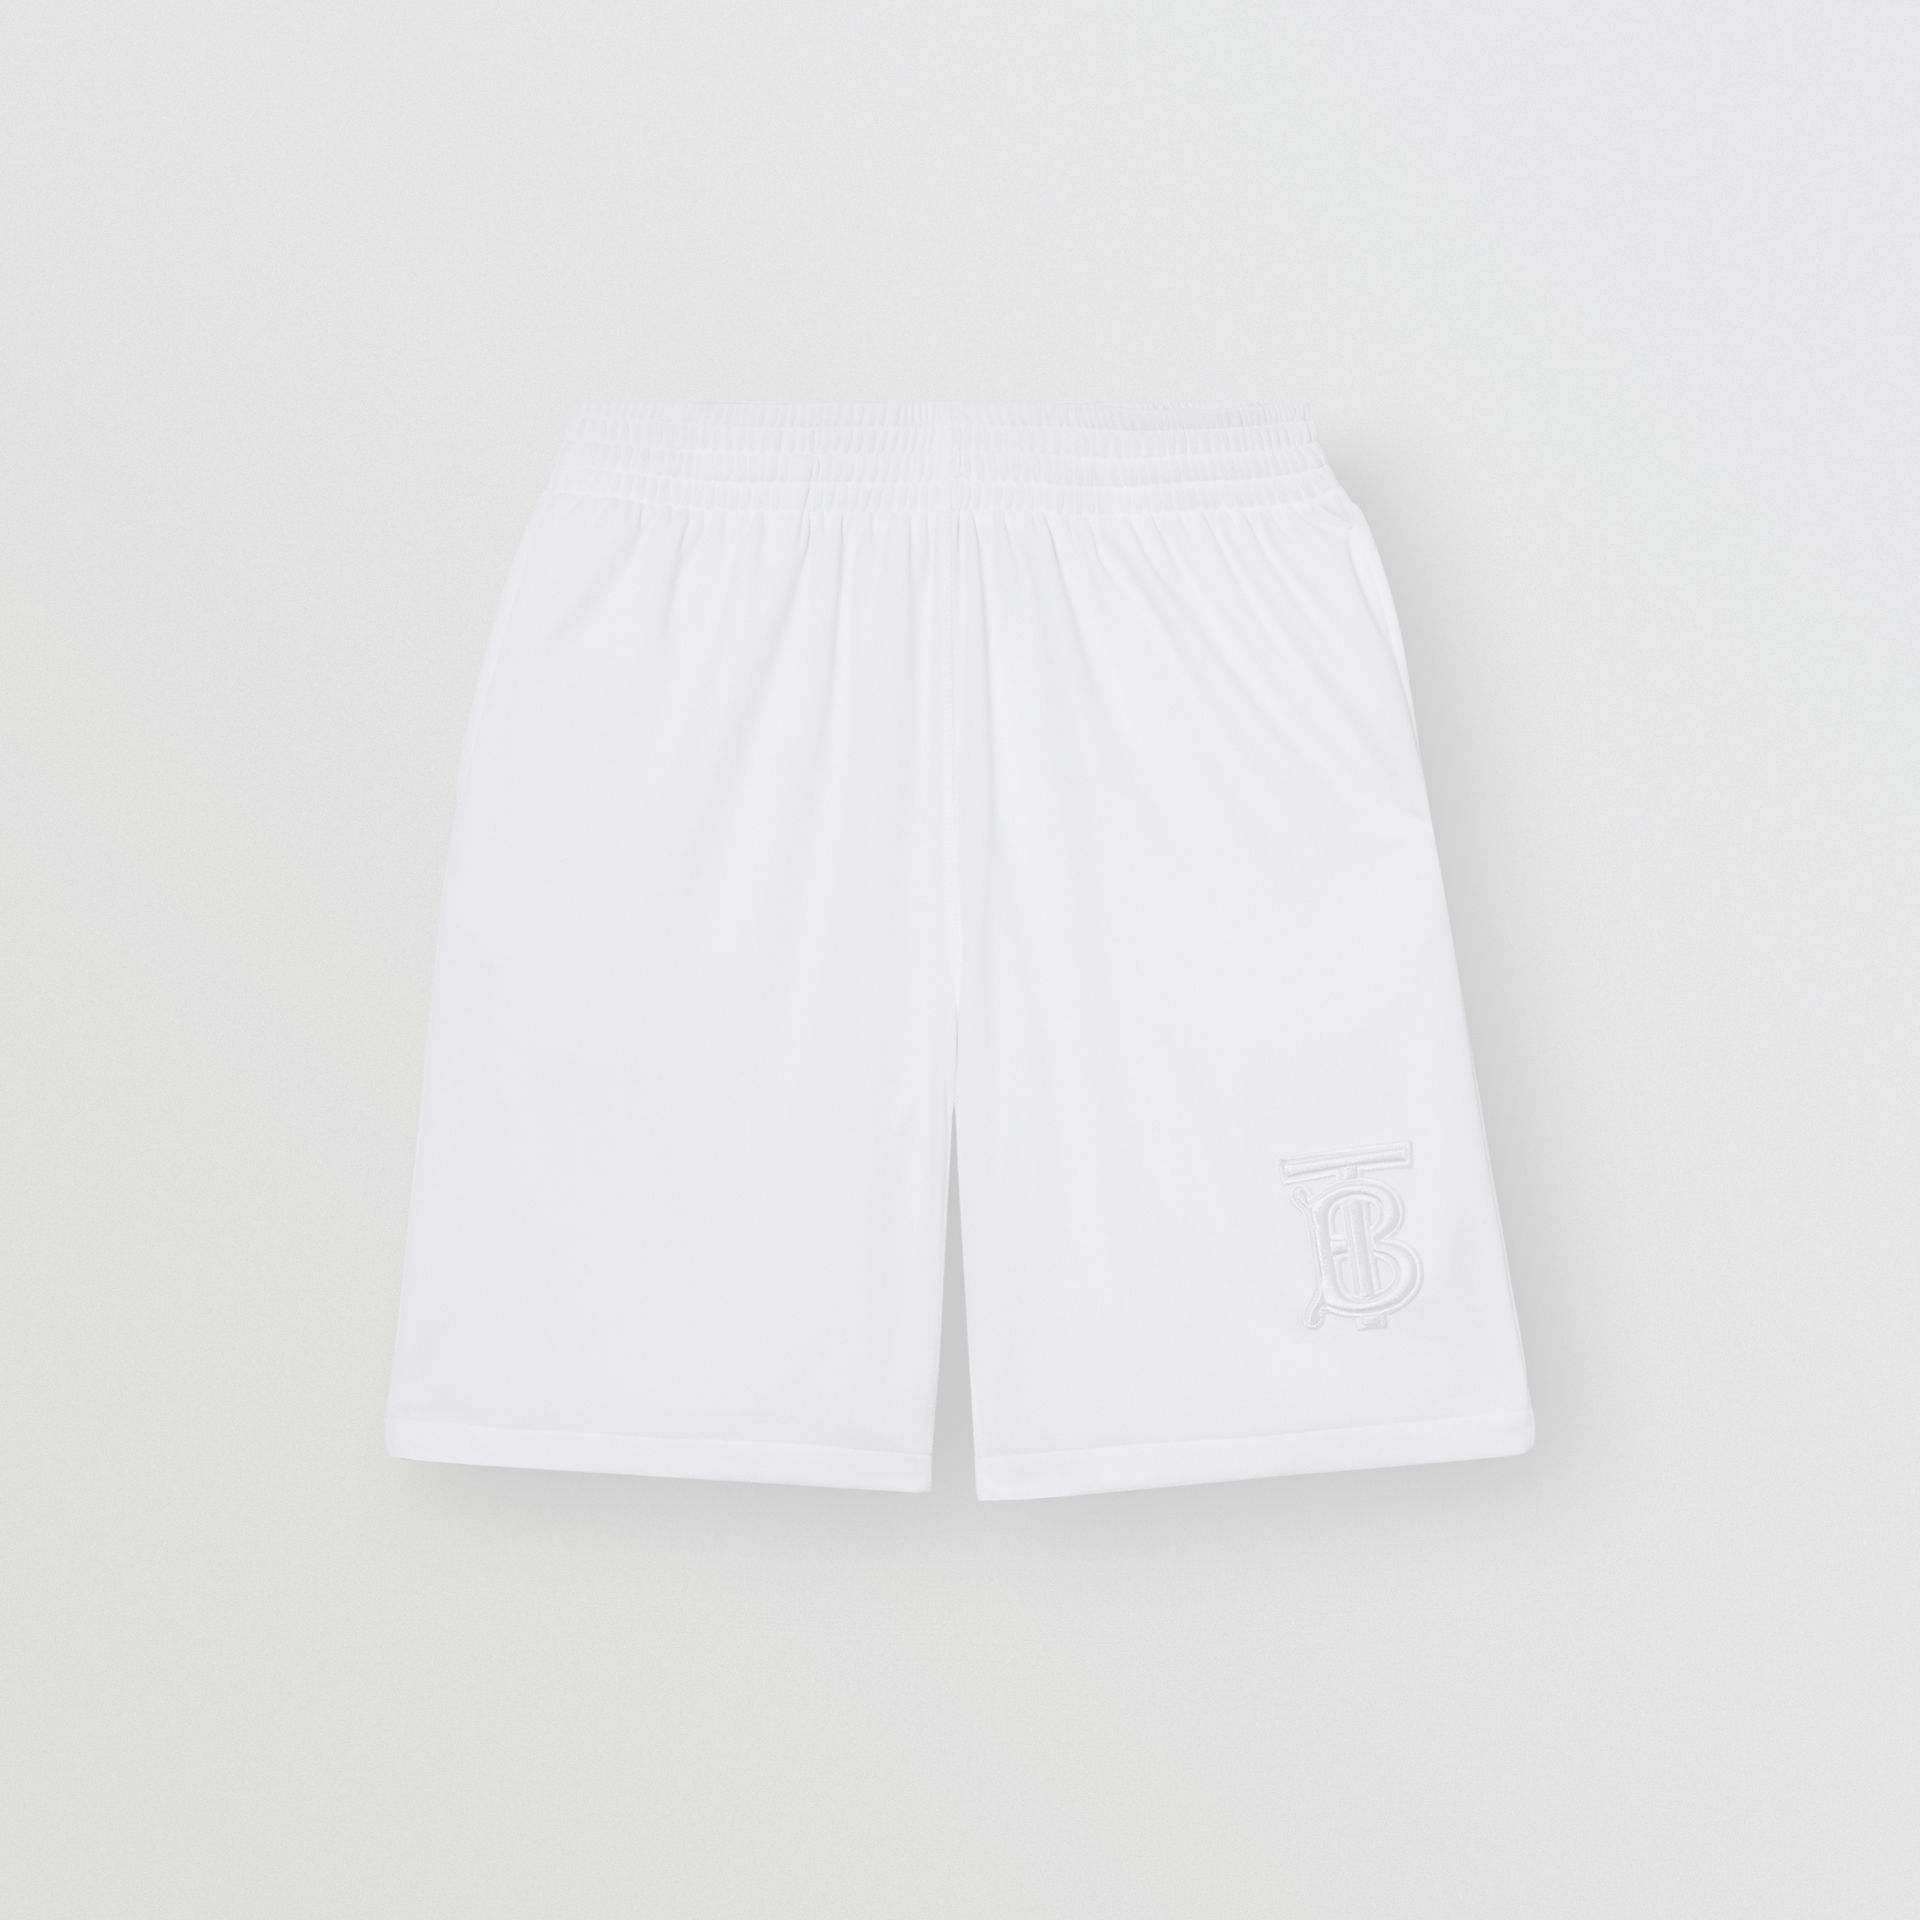 Monogram Motif Jersey Tennis Shorts in White - Men | Burberry - gallery image 3